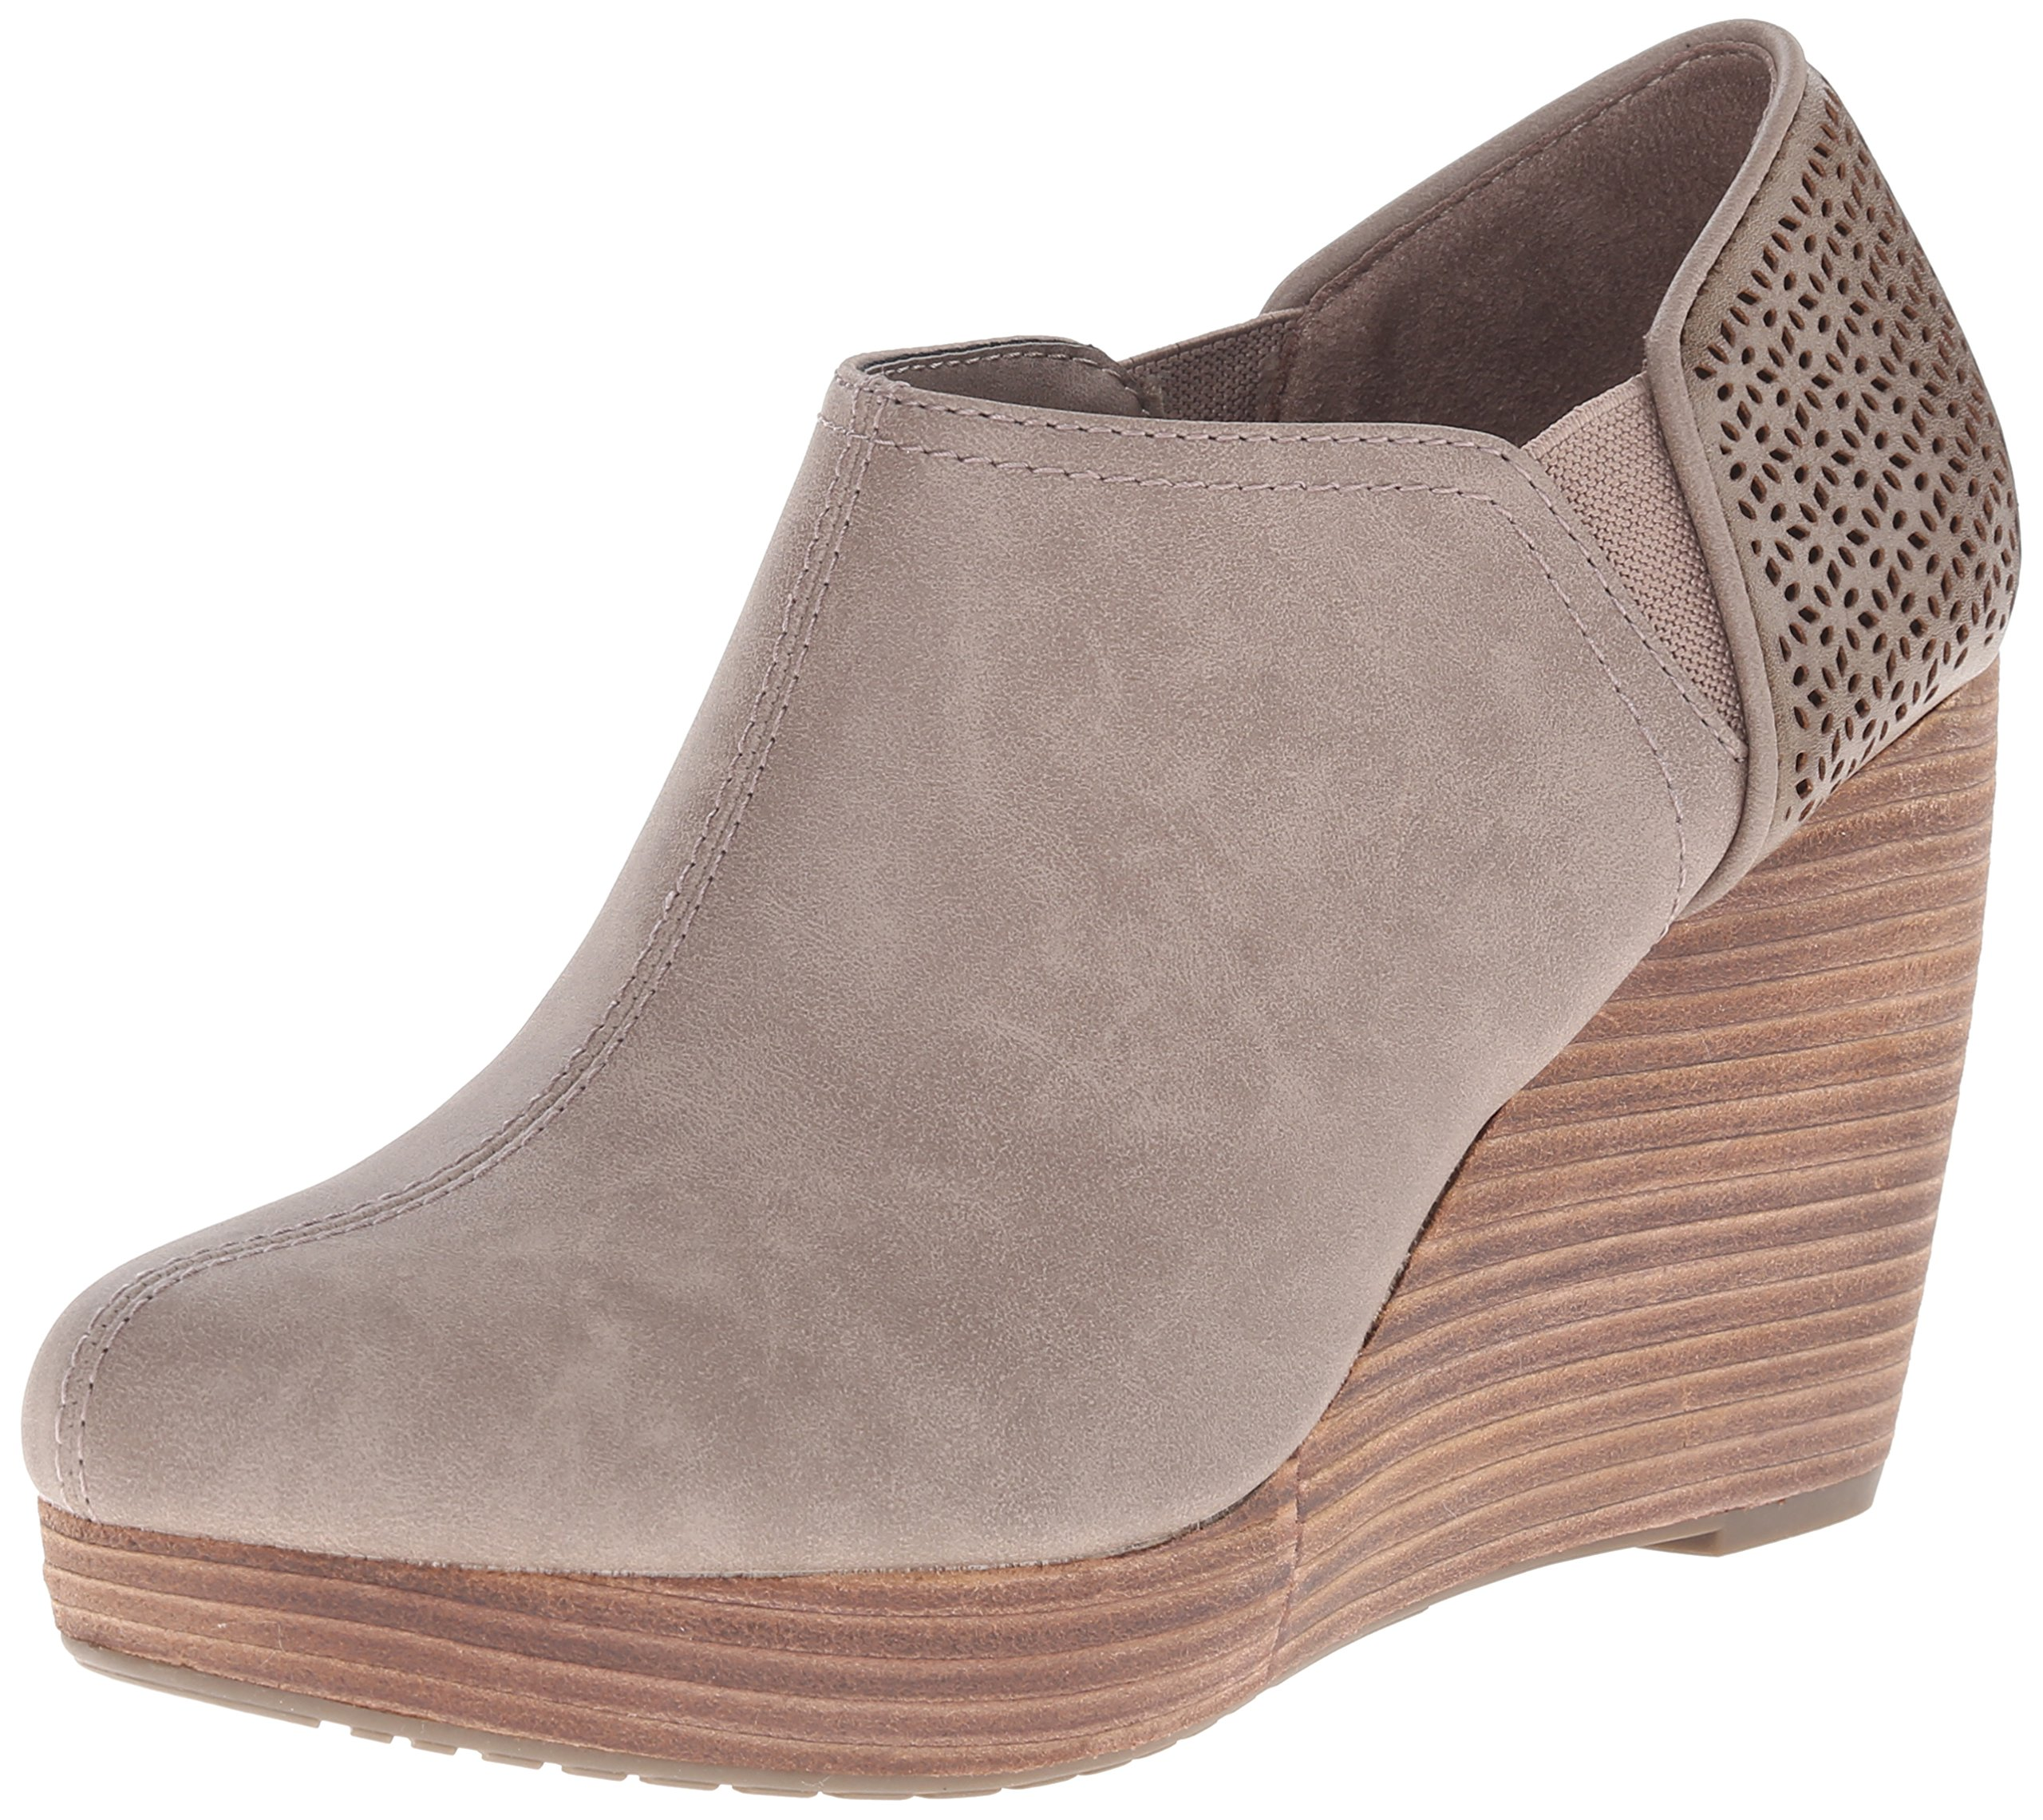 Dr. Scholl's Women's Harlow Boot Harlow,Taupe,9 M US